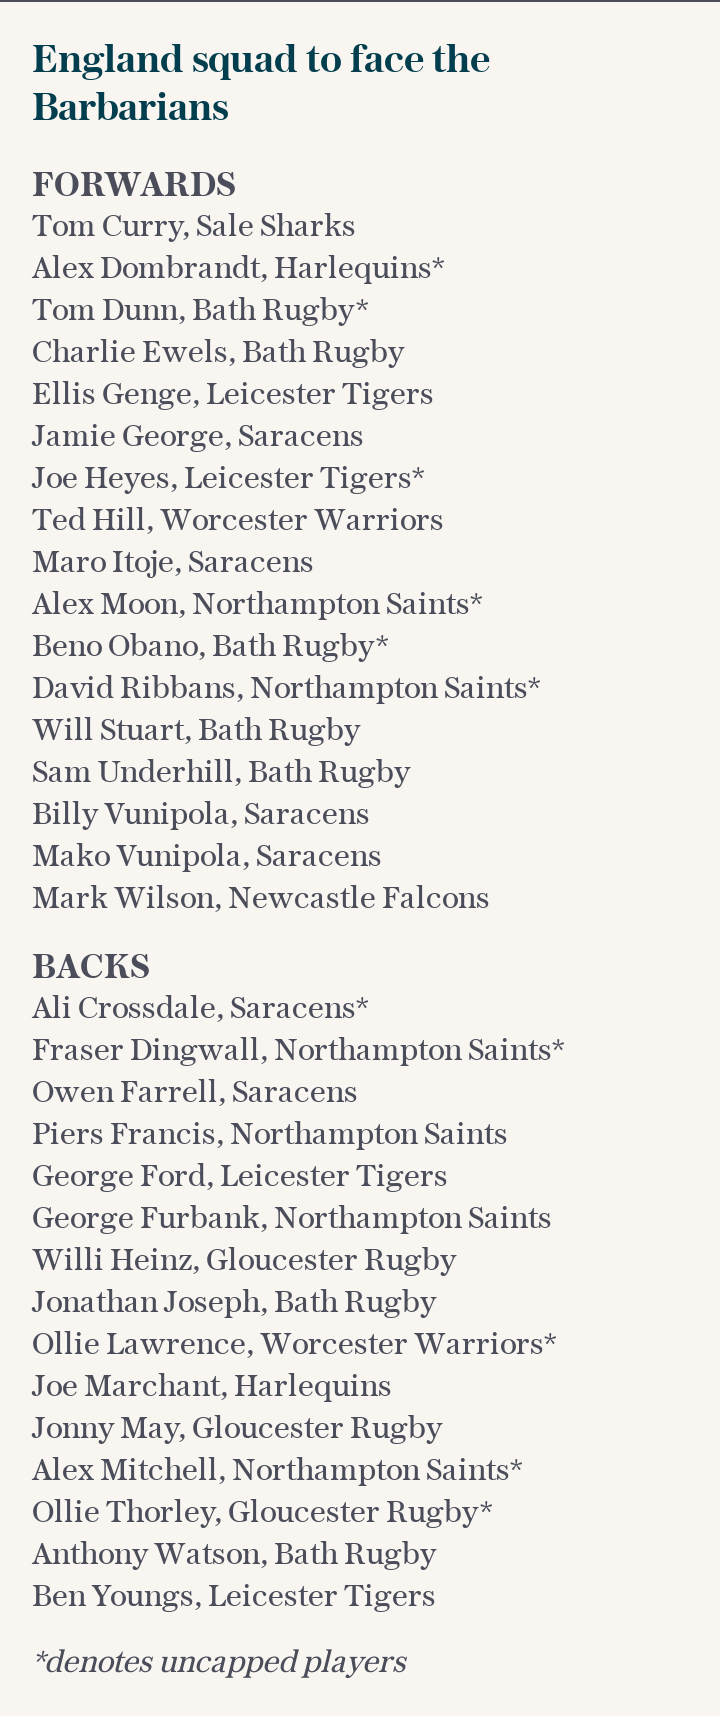 England squad to face the Barbarians